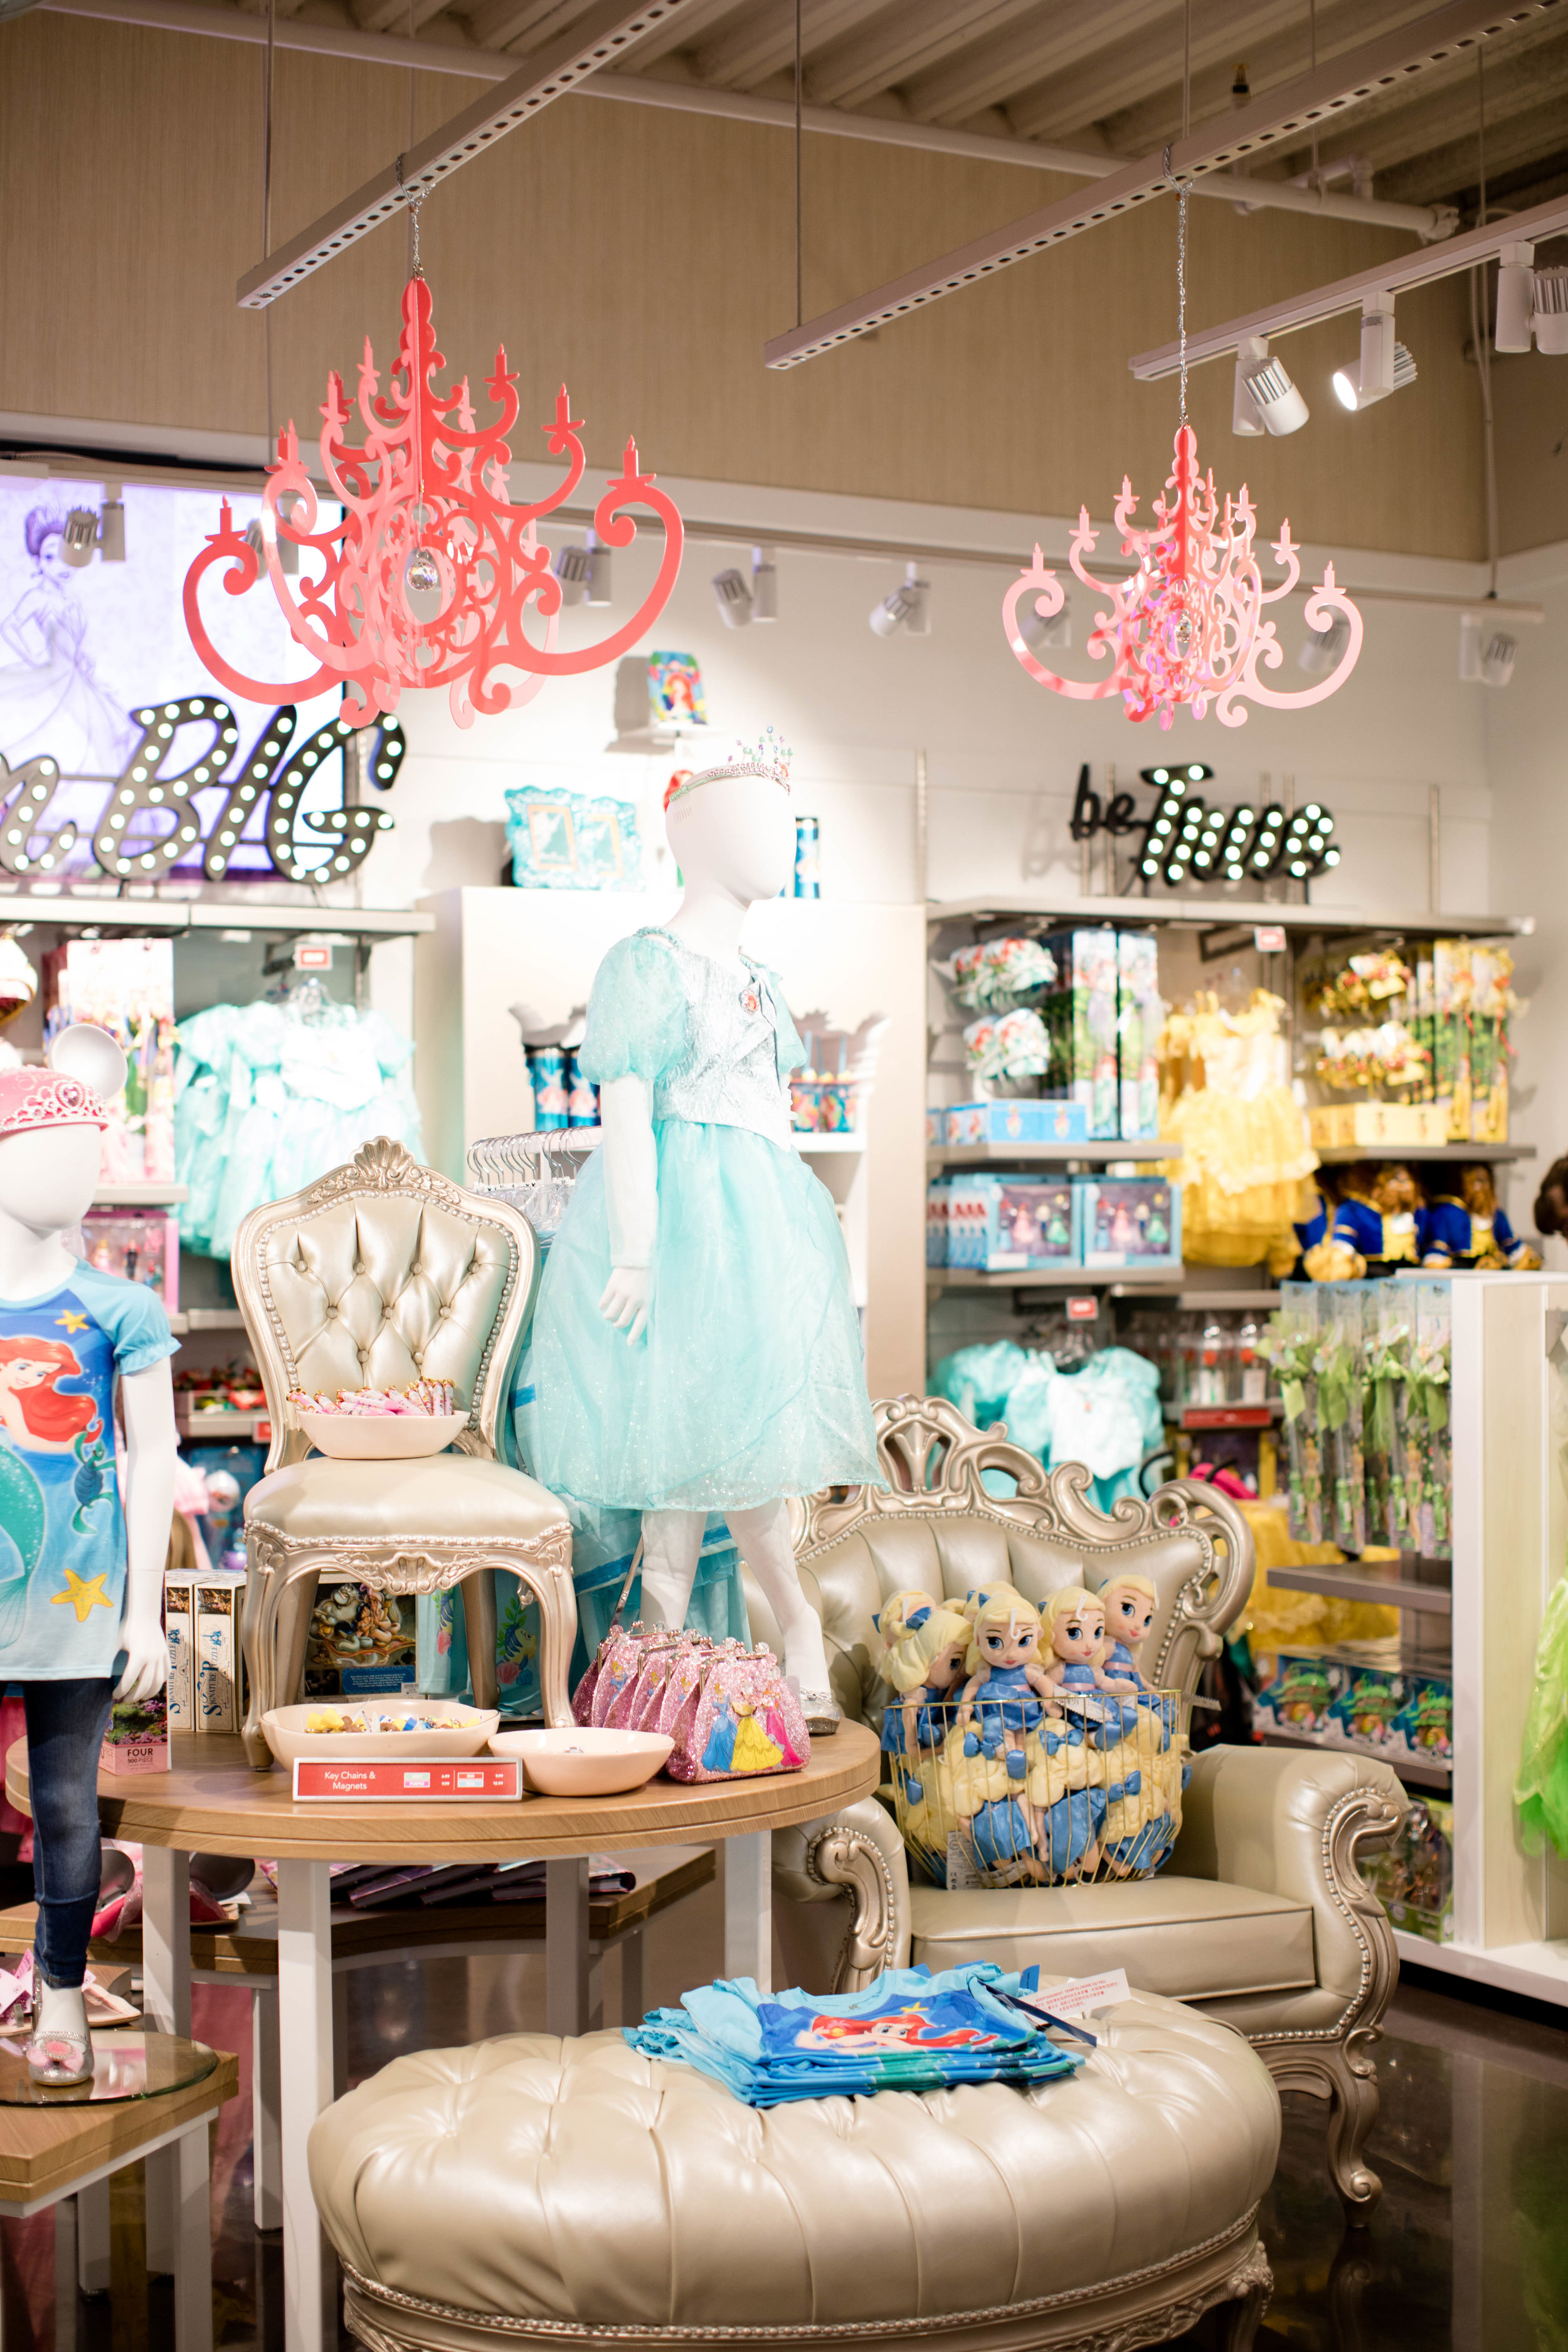 Pink Chandeliers were ordered to compliment the princess section of the Disney Corner Store.